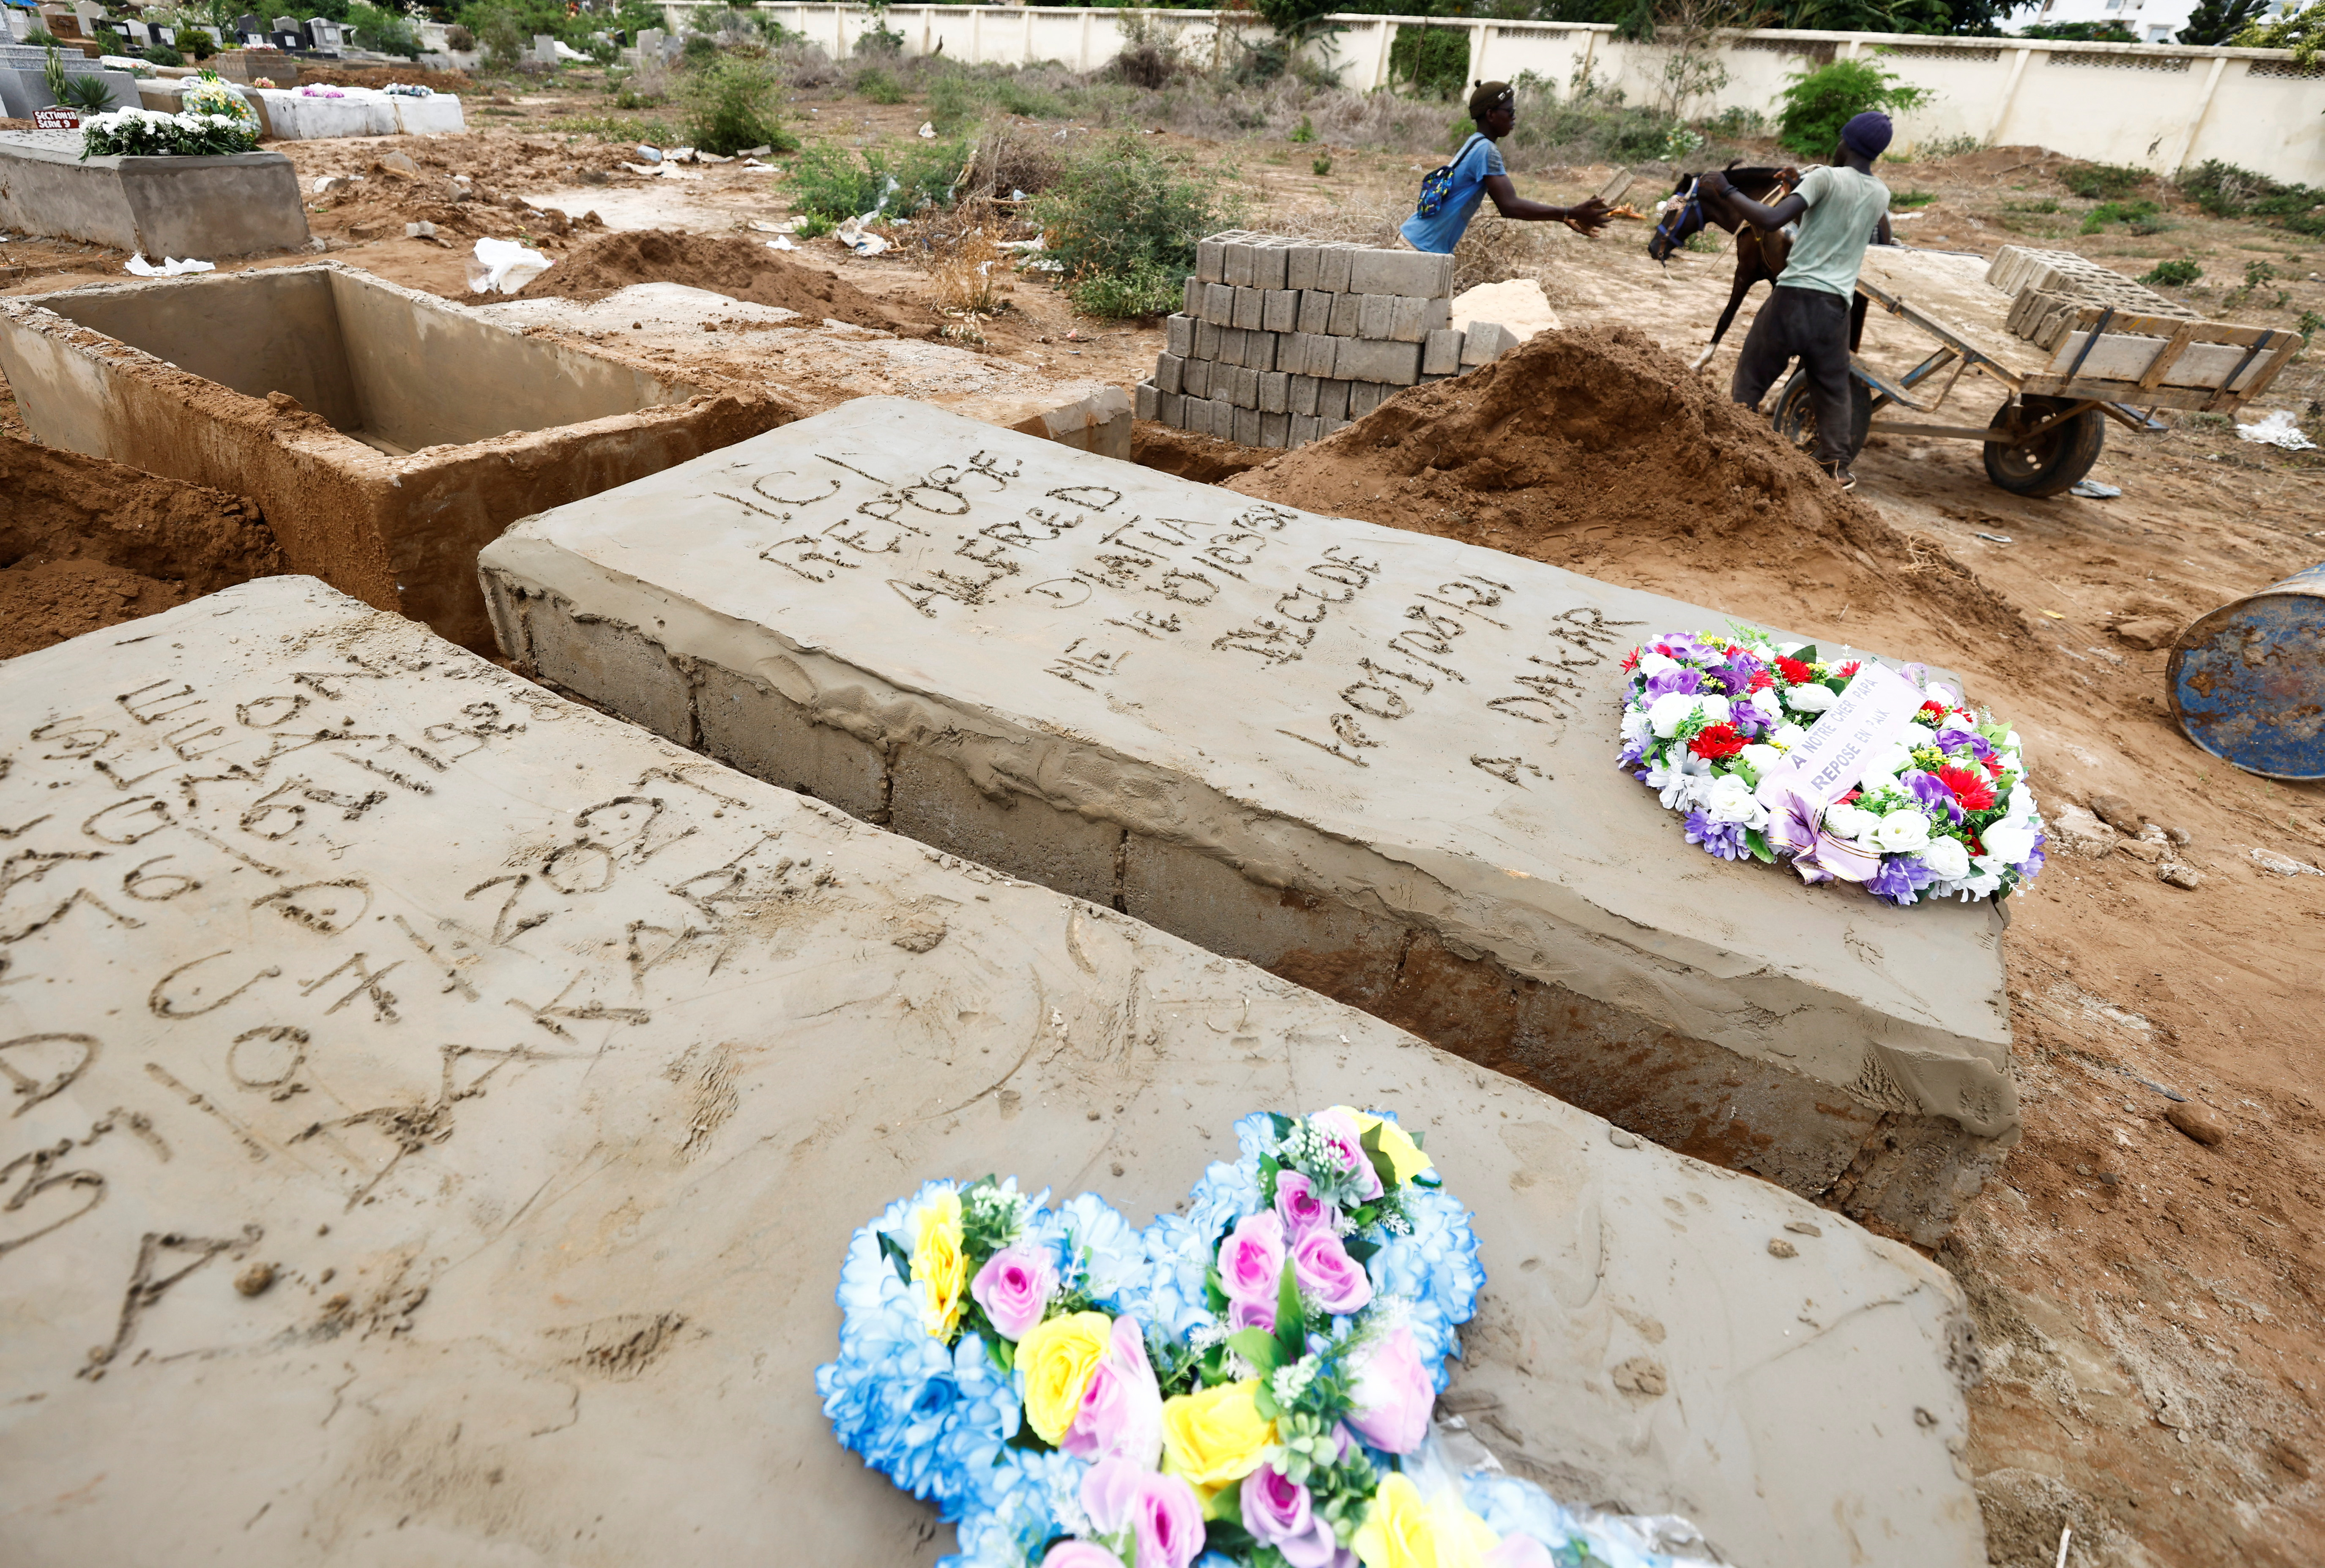 Grave diggers offload bricks next to the grave of a man who, according to his son, died from the coronavirus disease (COVID-19), at the Christian Saint-Lazare Cemetery, as Senegal records more COVID-19 deaths, Dakar, Senegal August 4, 2021. REUTERS/Zohra Bensemra